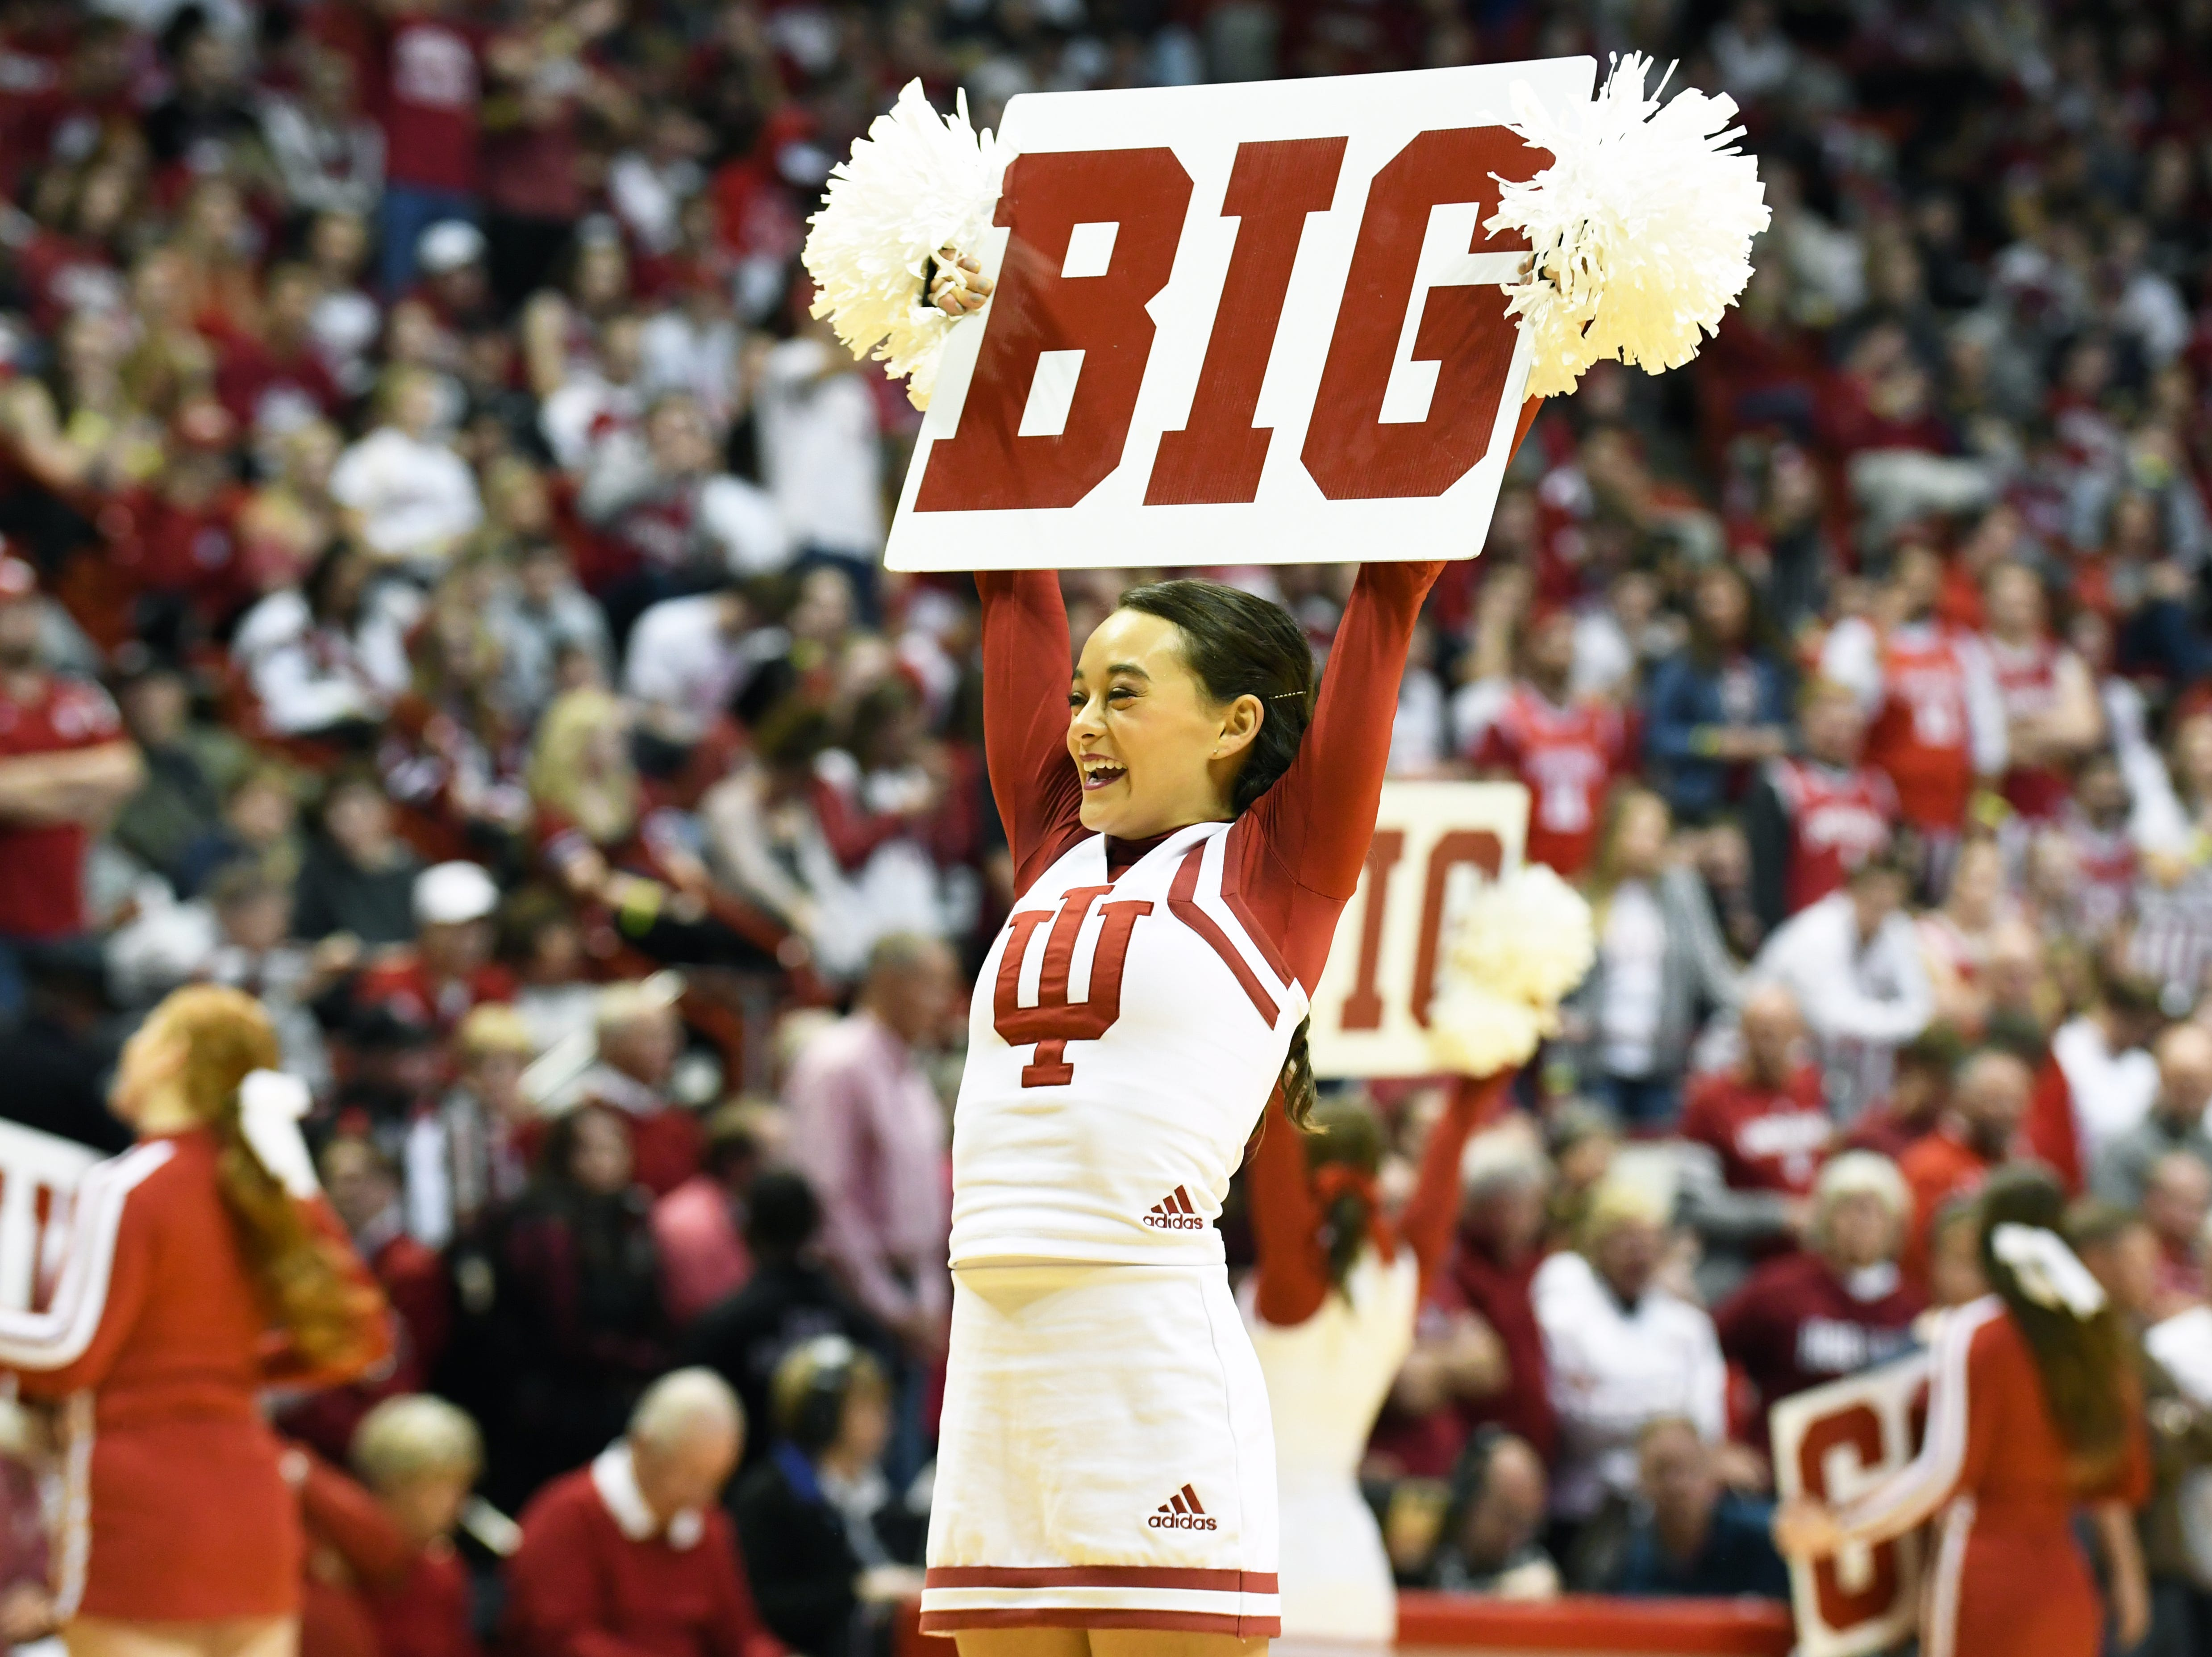 An Indiana Hoosiers cheerleader cheers during the game against Northwestern at Simon Skjodt Assembly Hall in Bloomington, Ind., on Saturday, Dec. 1, 2018.